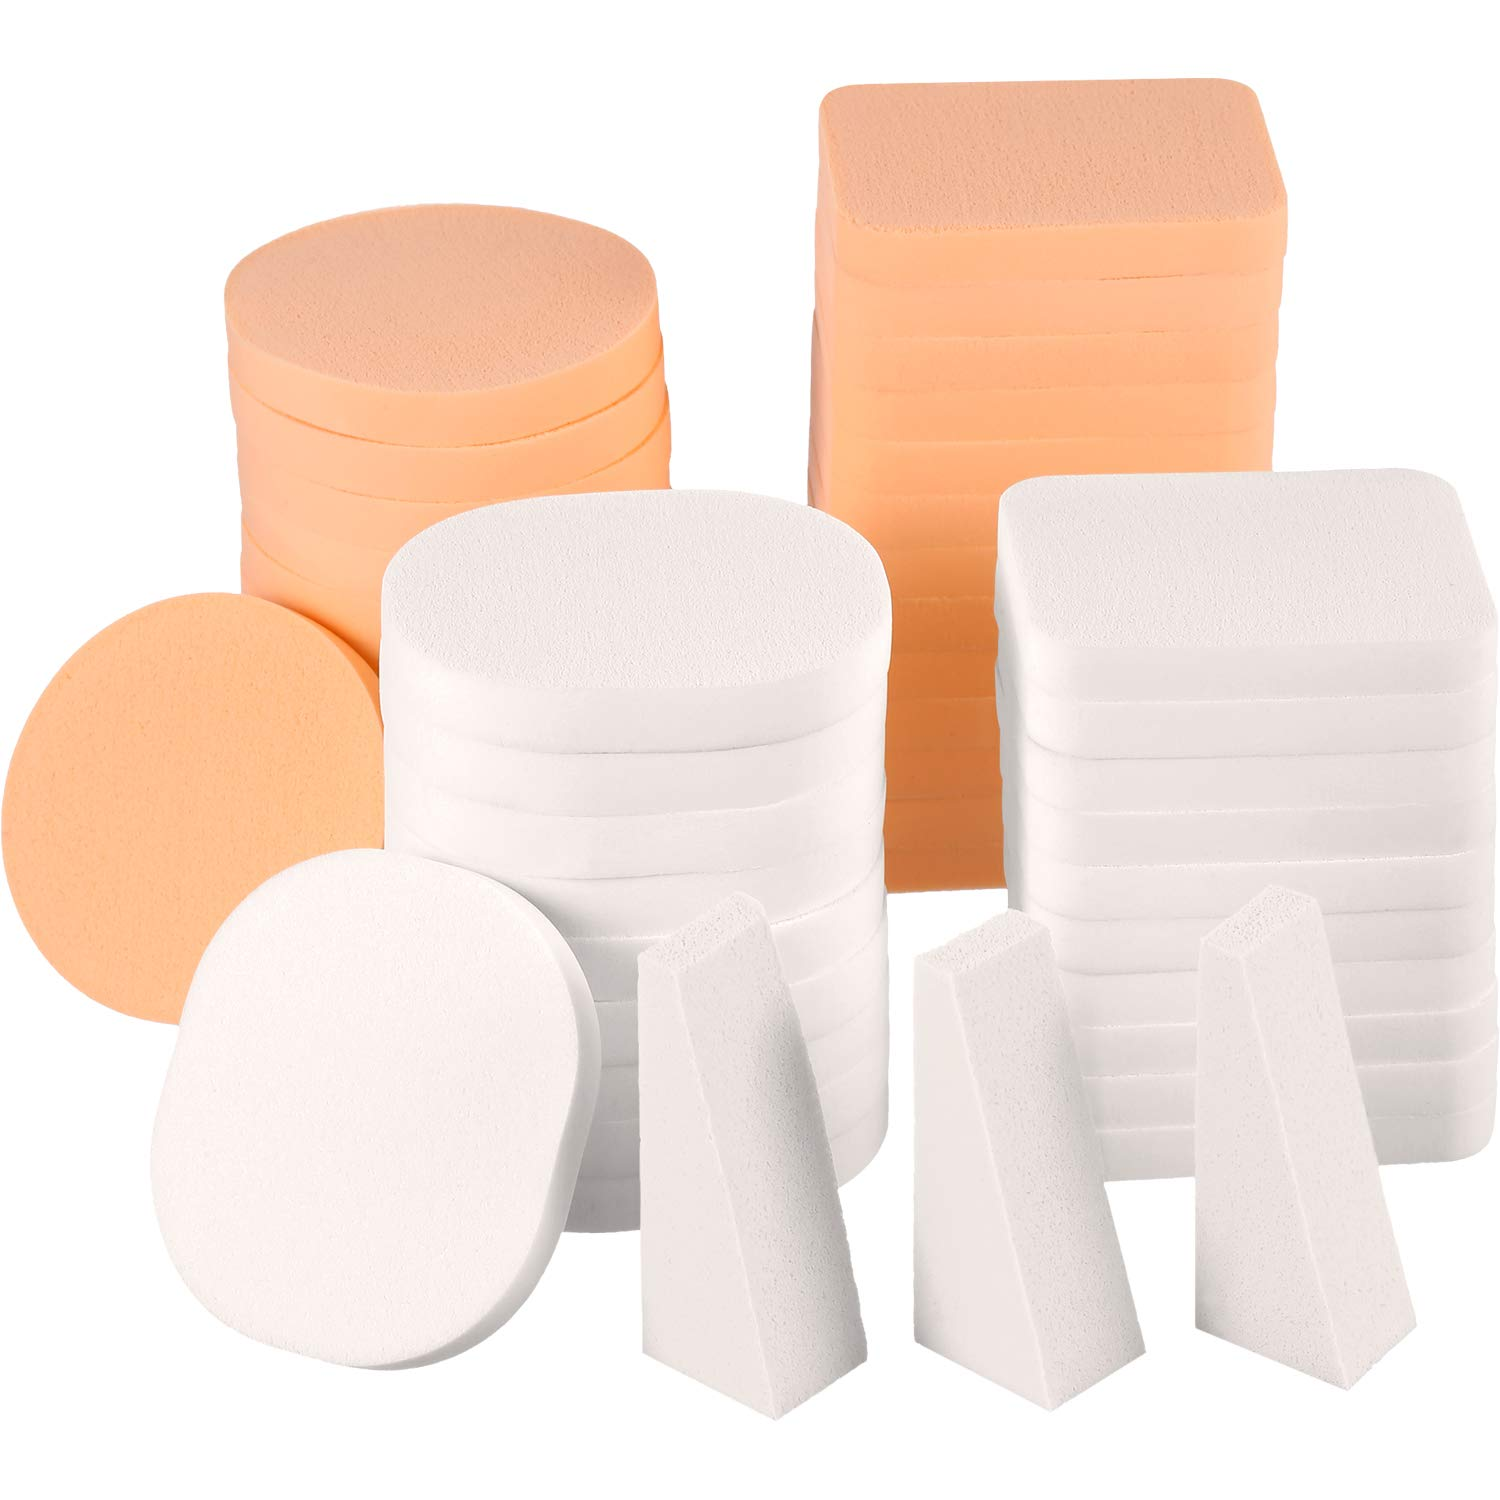 TecUnite 100 Pieces Cosmetic Sponges Latex Makeup Foam Wedges Foundation Beauty Tools (5 Styles, White and Skin)